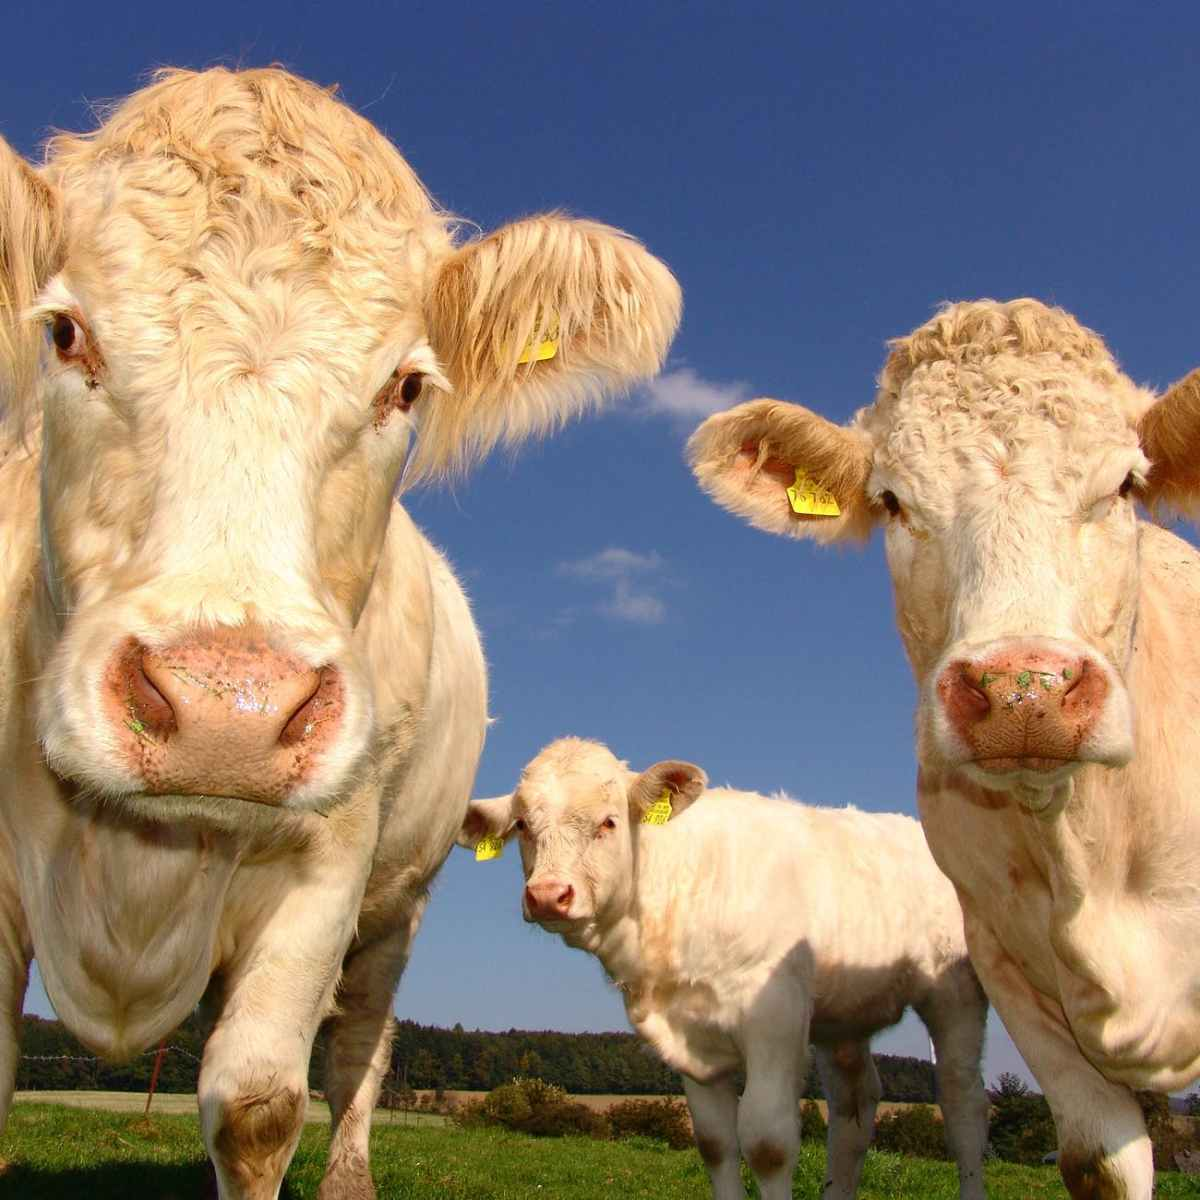 agriculture cows curious pasture